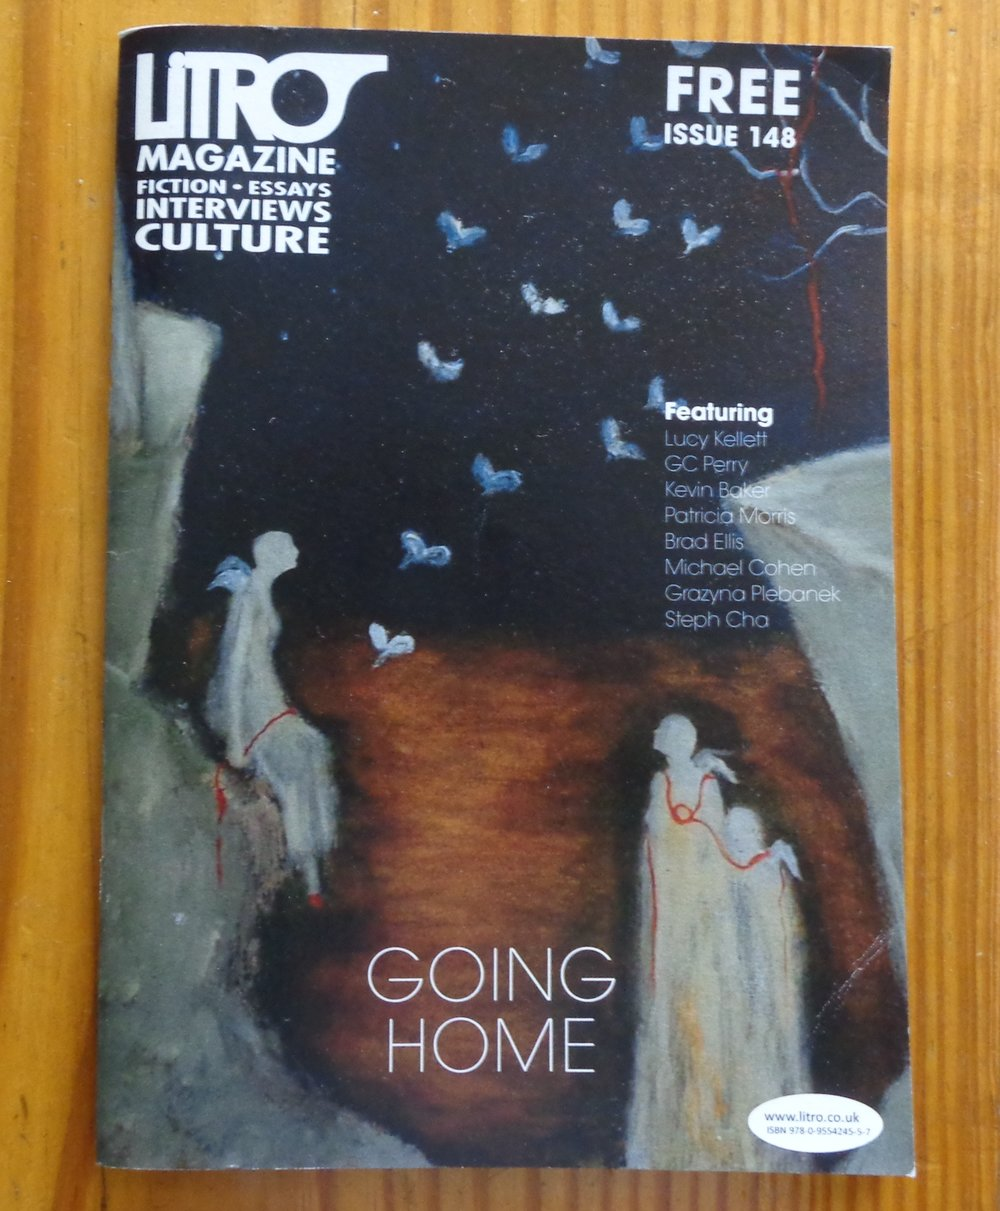 Litro Magazine, cover art